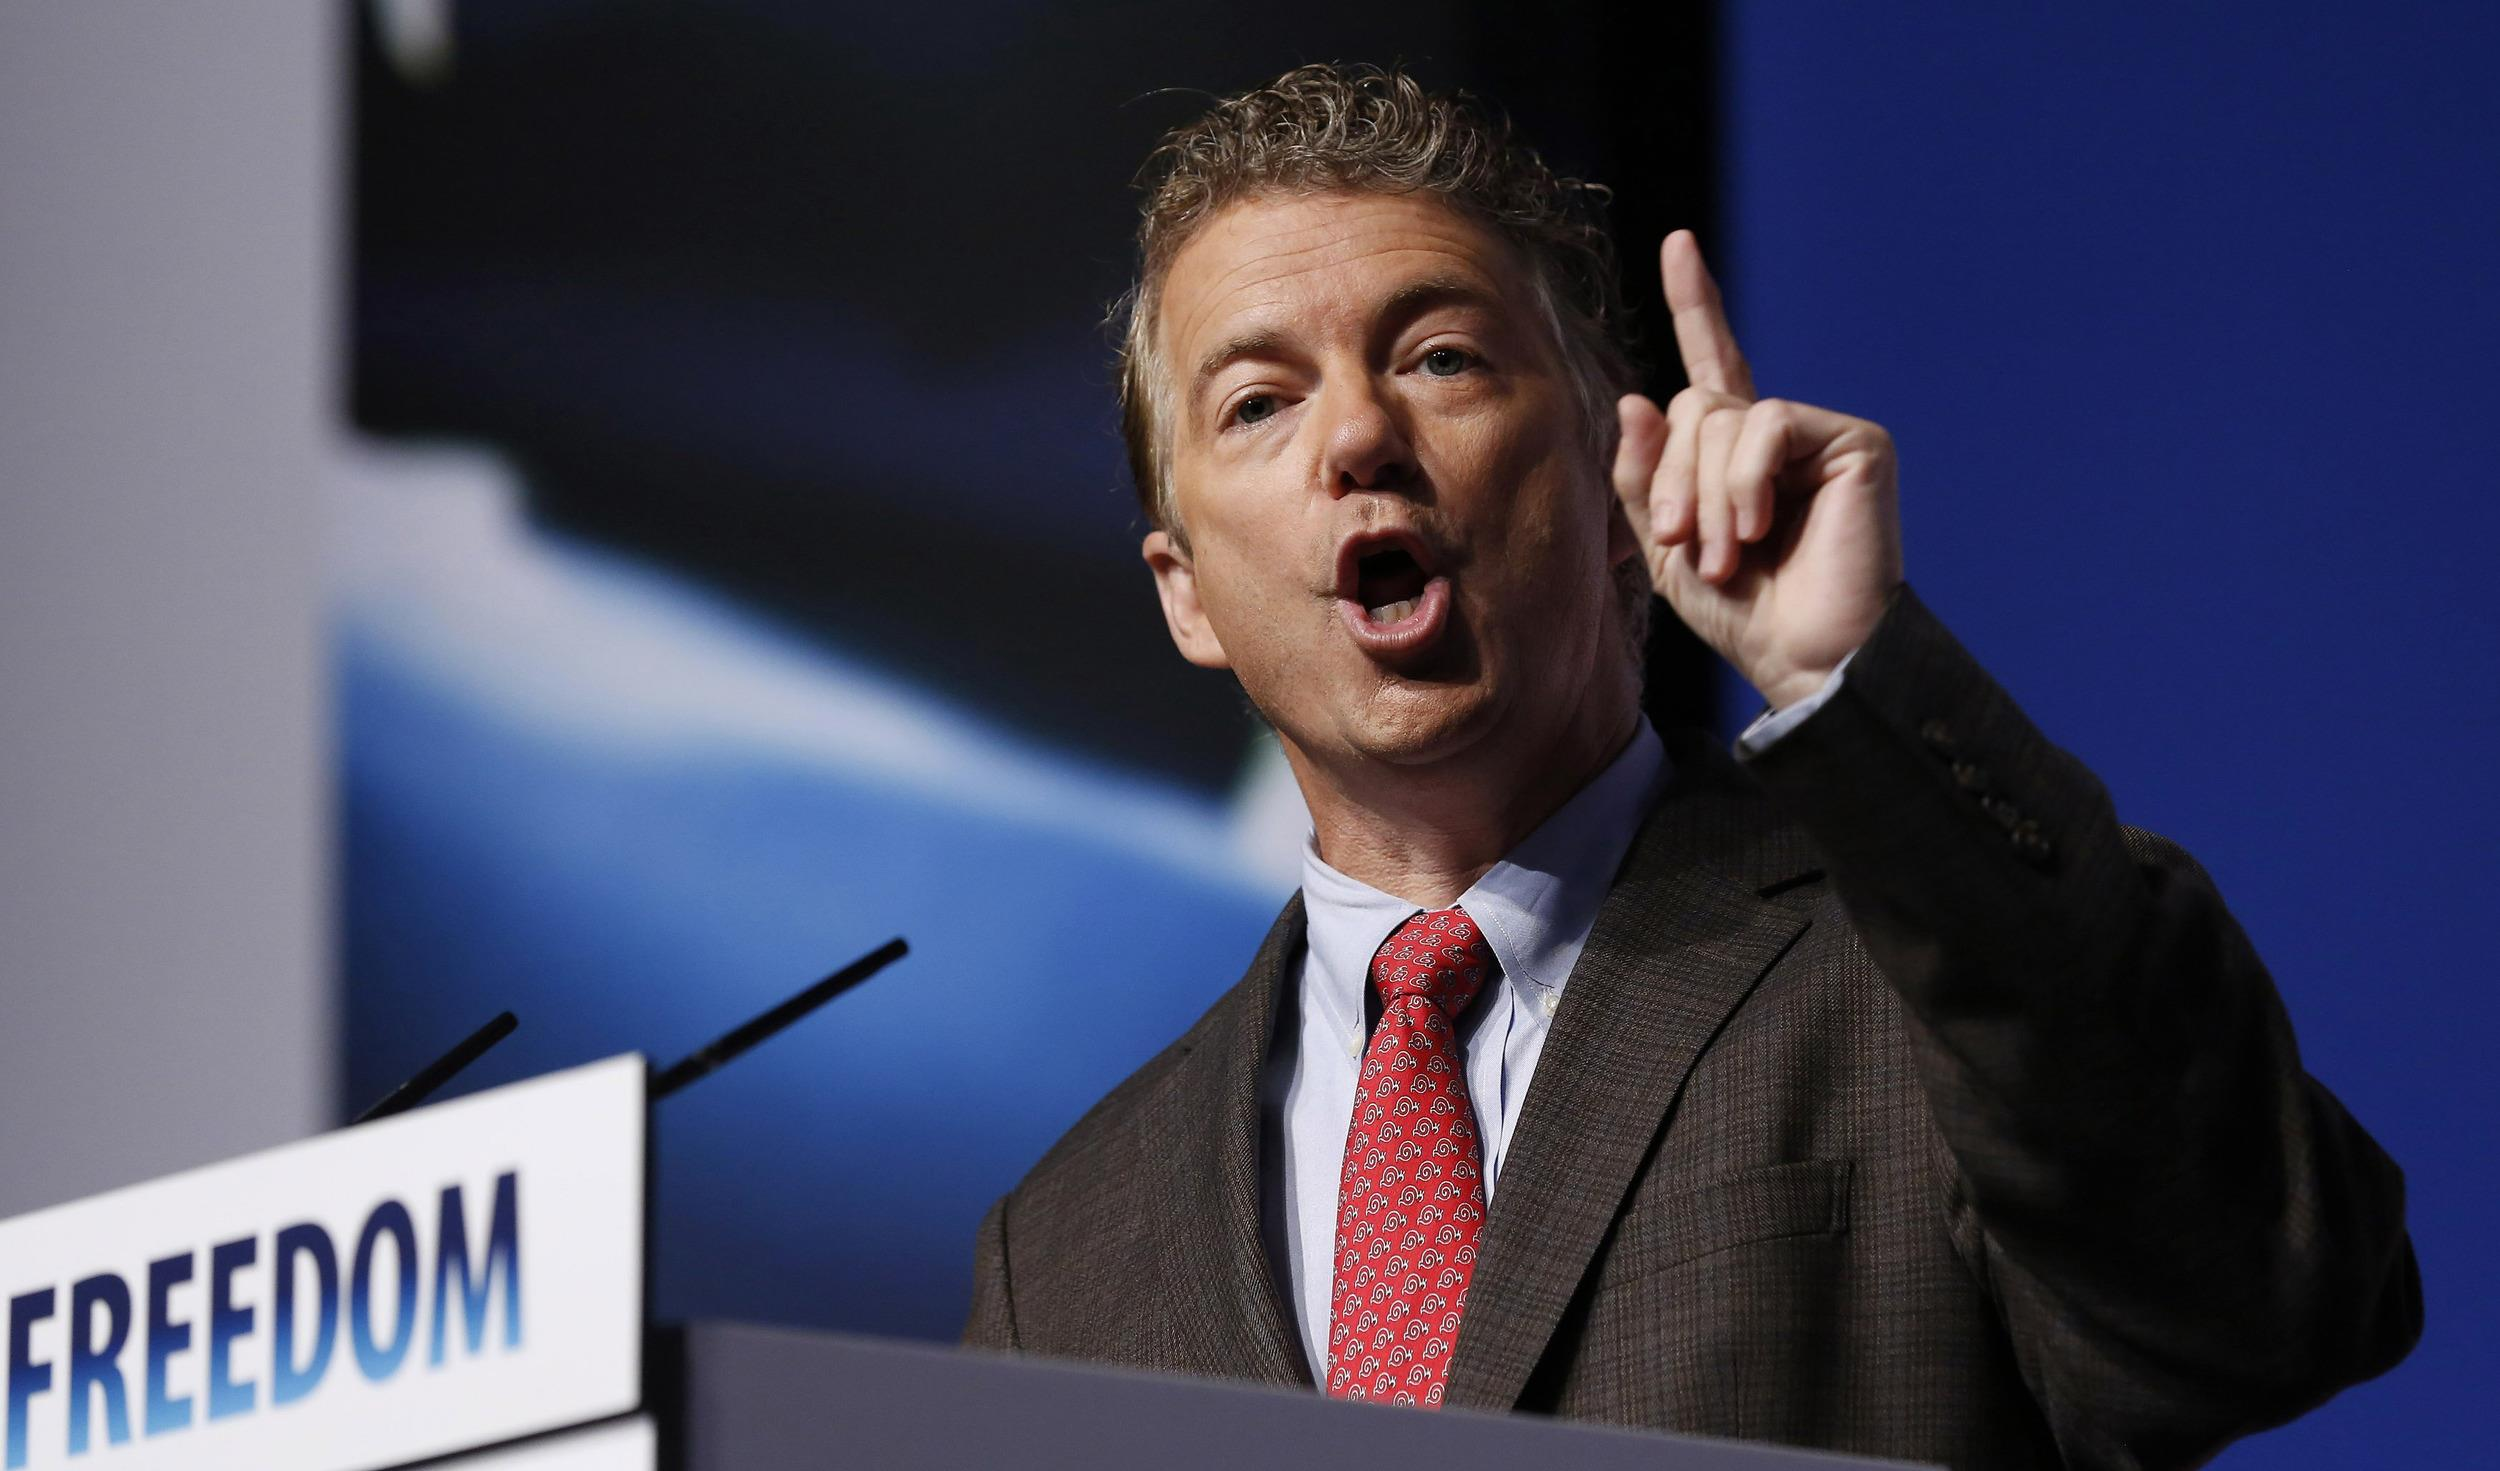 Image: U.S. Sen. Rand Paul speaks during the second day of the 5th annual Faith & Freedom Coalition's